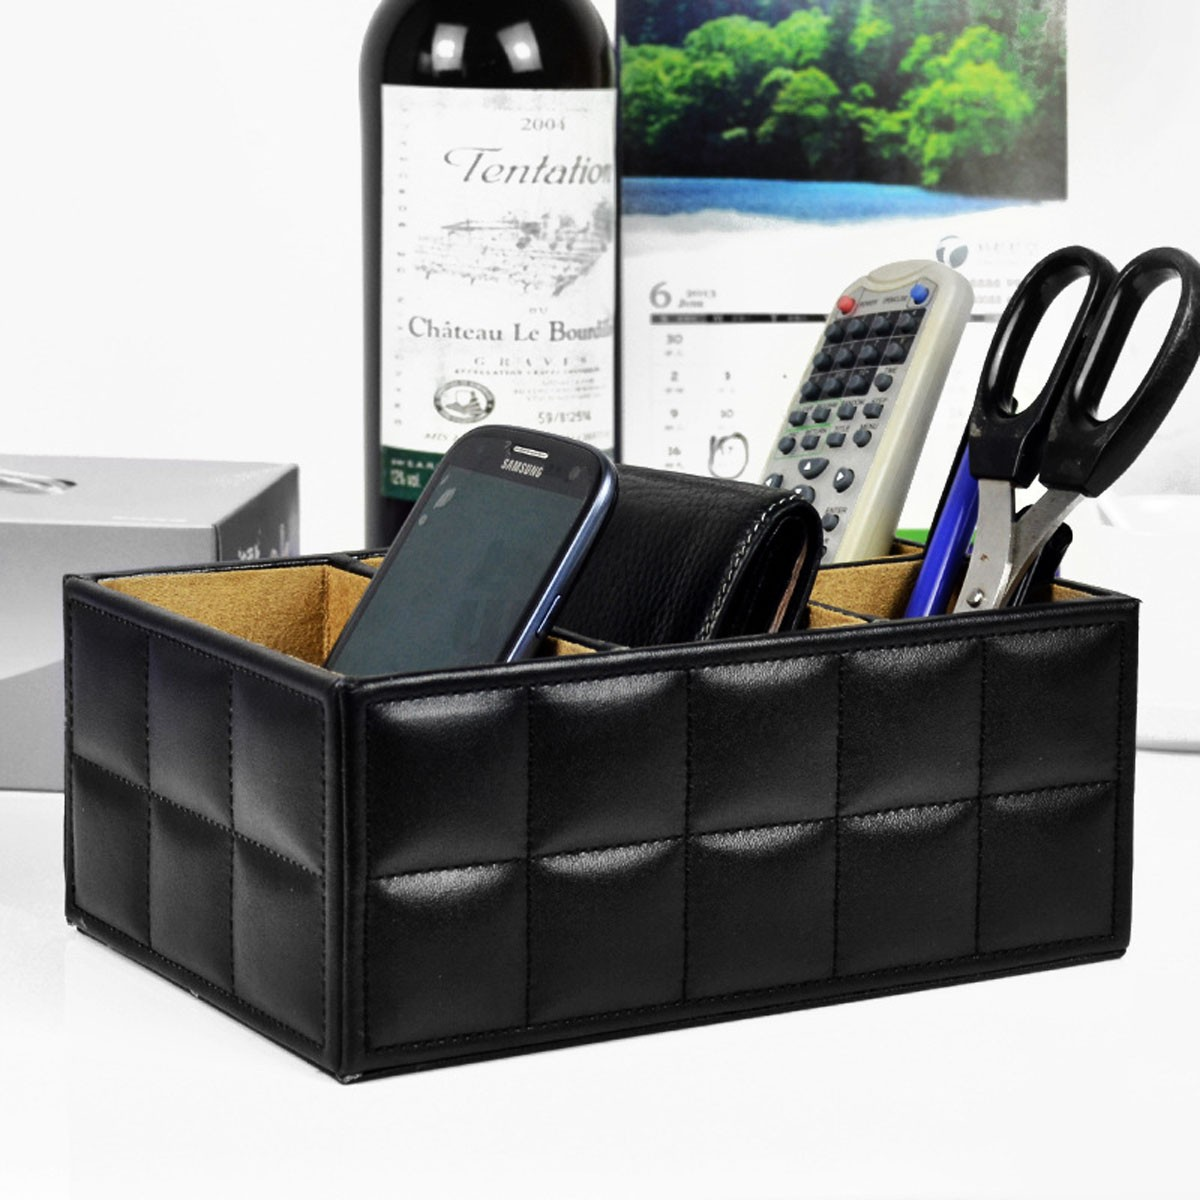 bo te de rangement en pu cuir maquillage bureau organisateur pot crayon phone ebay. Black Bedroom Furniture Sets. Home Design Ideas